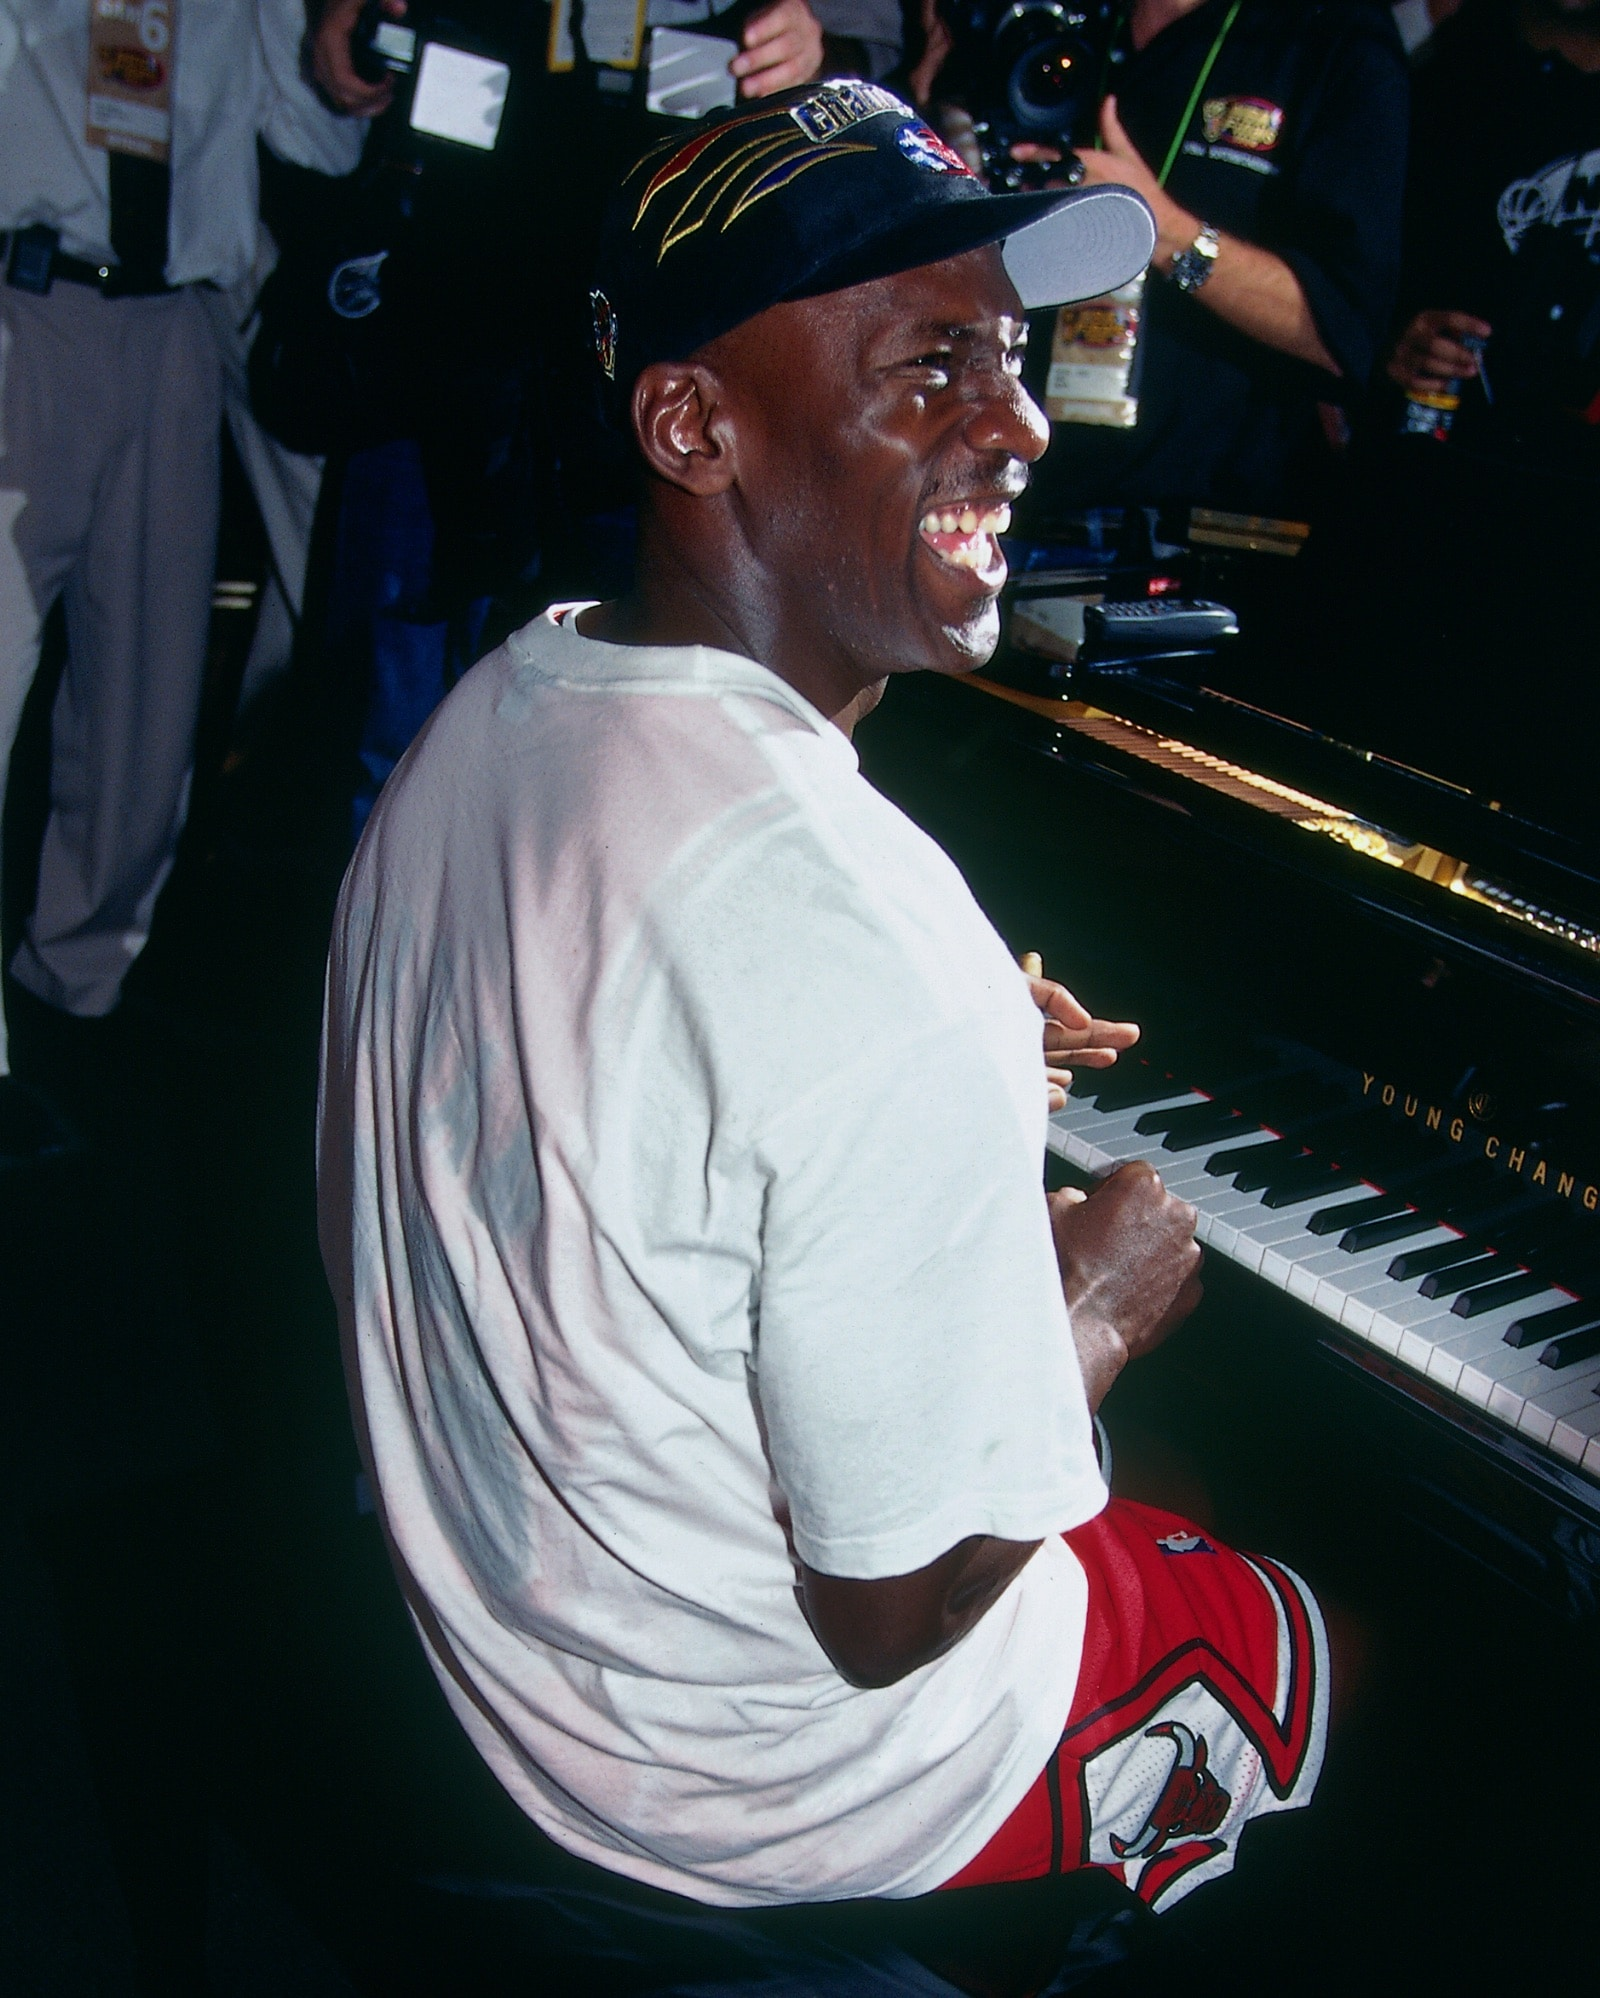 Michael Jordan celebrates on a piano after winning the 1998 NBA Championship